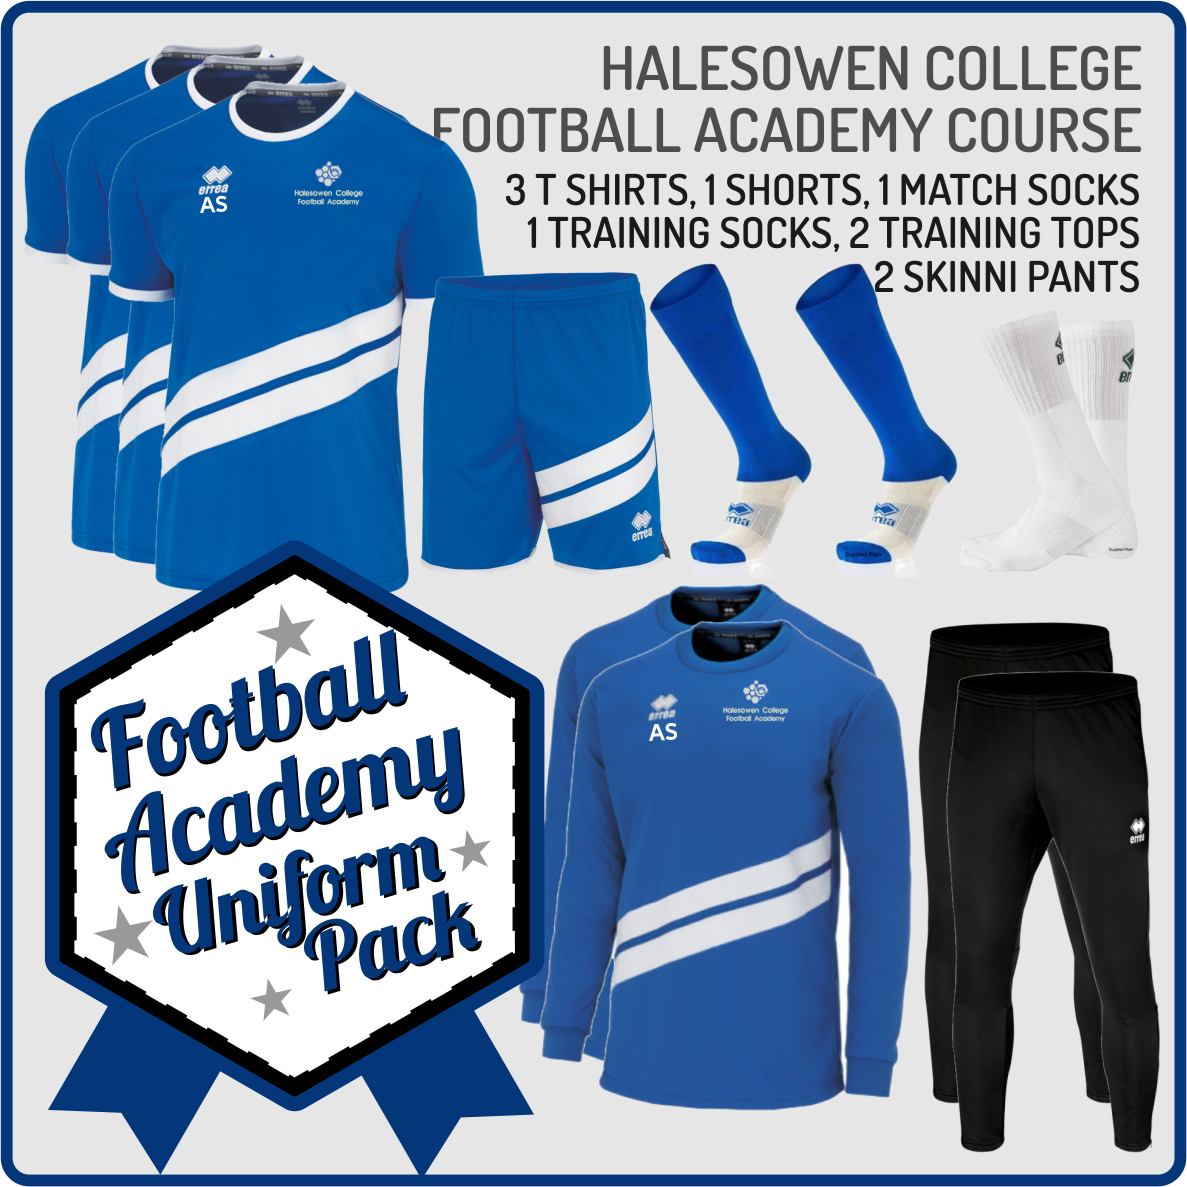 Complusary  Uniform Set for Football Academy Course Students - 3 Training Tees, 1 pair Shorts, 1 Match Socks, 1 Training Socks, 2 Training Tops and 2 Skinni Pants. Initials offer on T Shirts and Training Top.